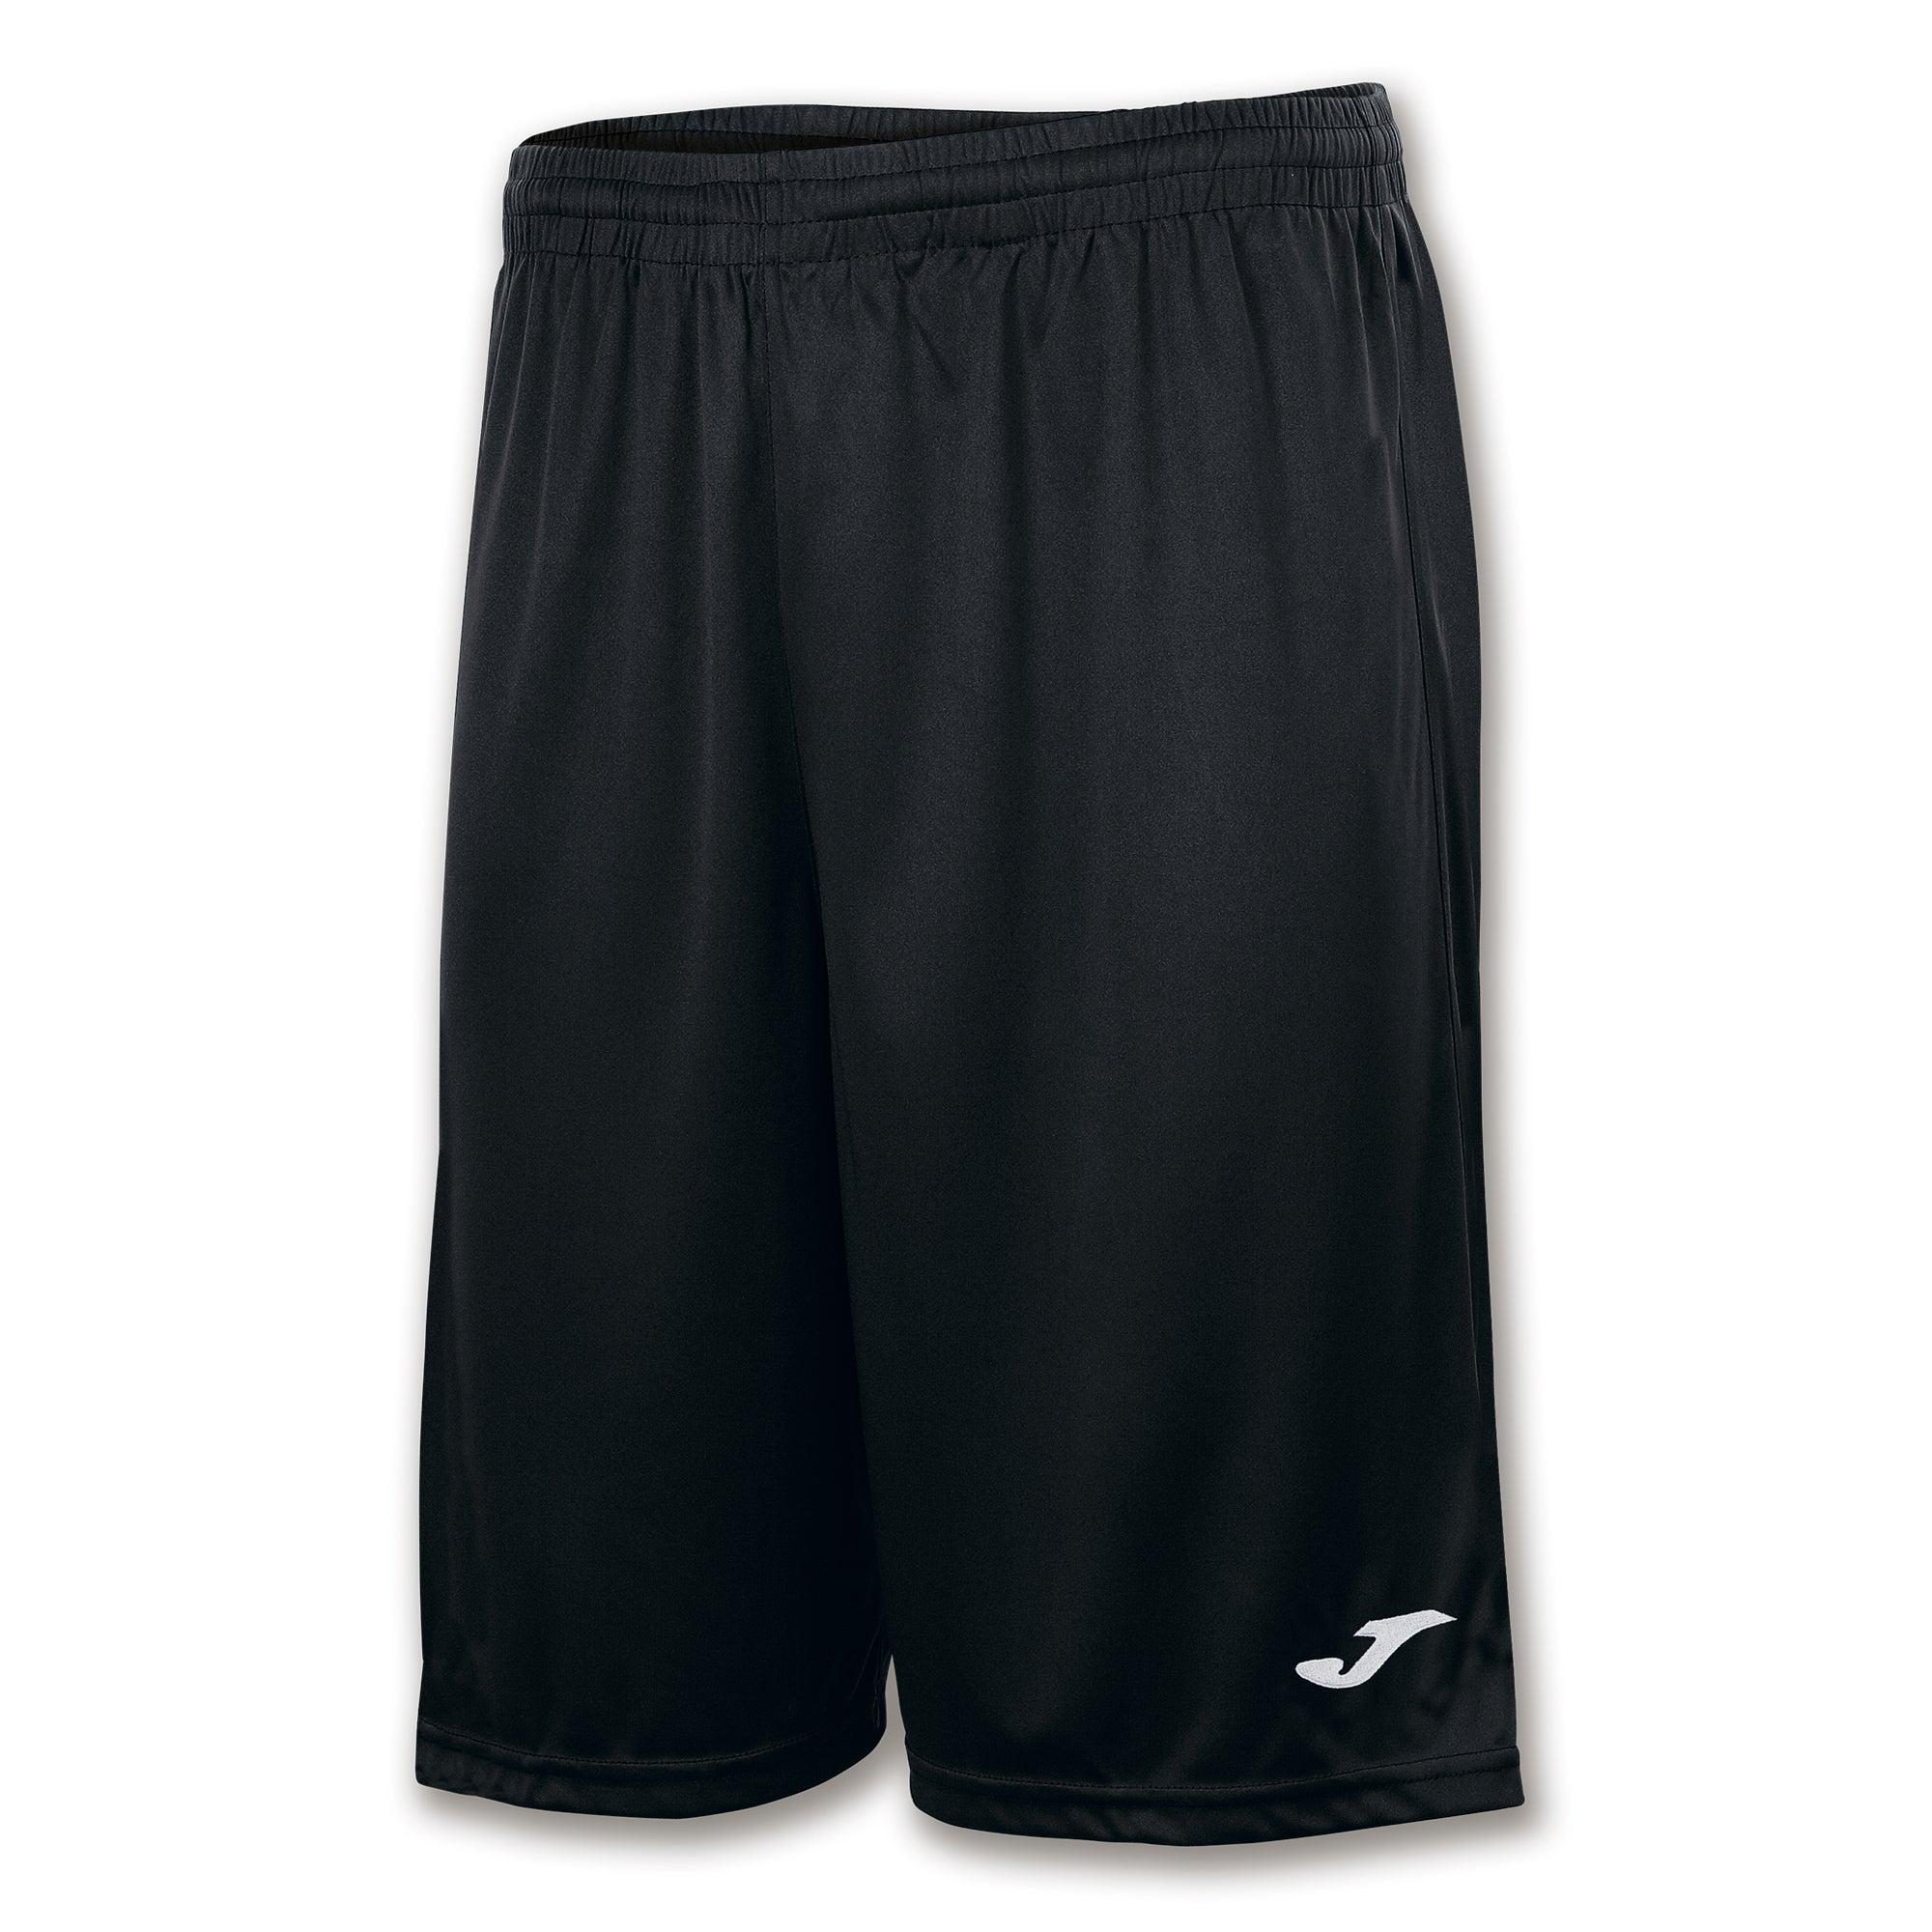 Teamwear - Joma Nobel Long Shorts - Black - JO-101648-100